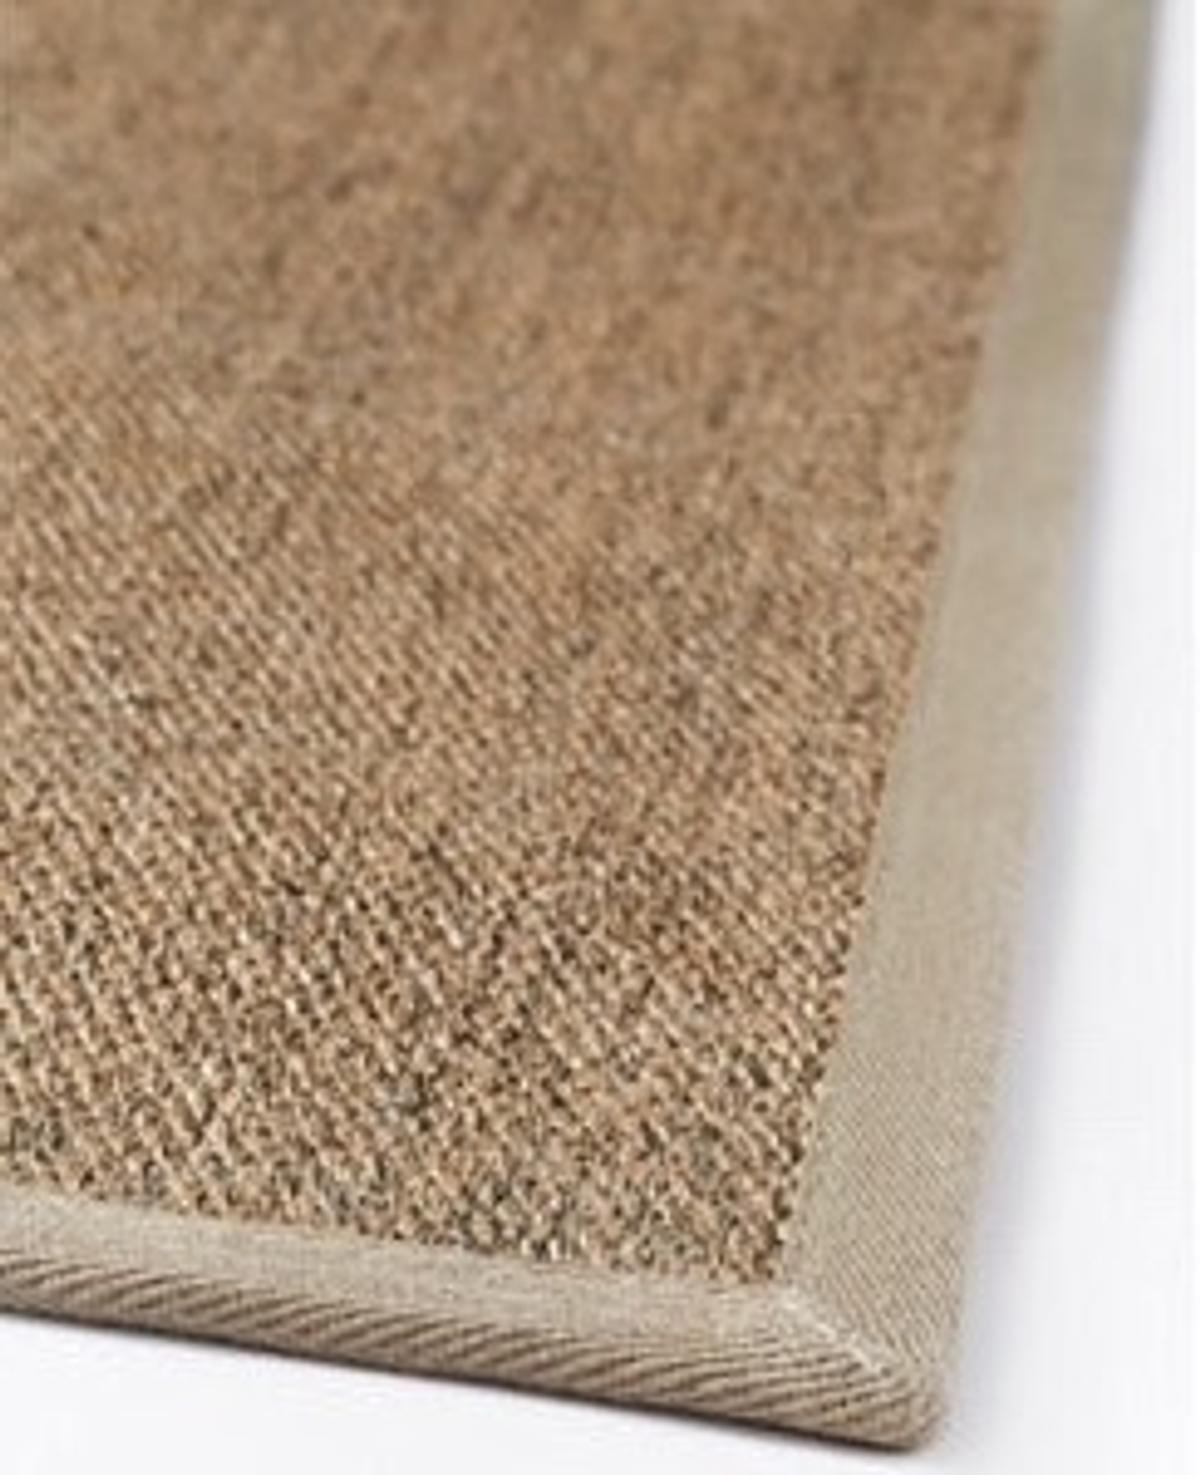 Rug Ikea Osted 212x 300 Cm In W4 London